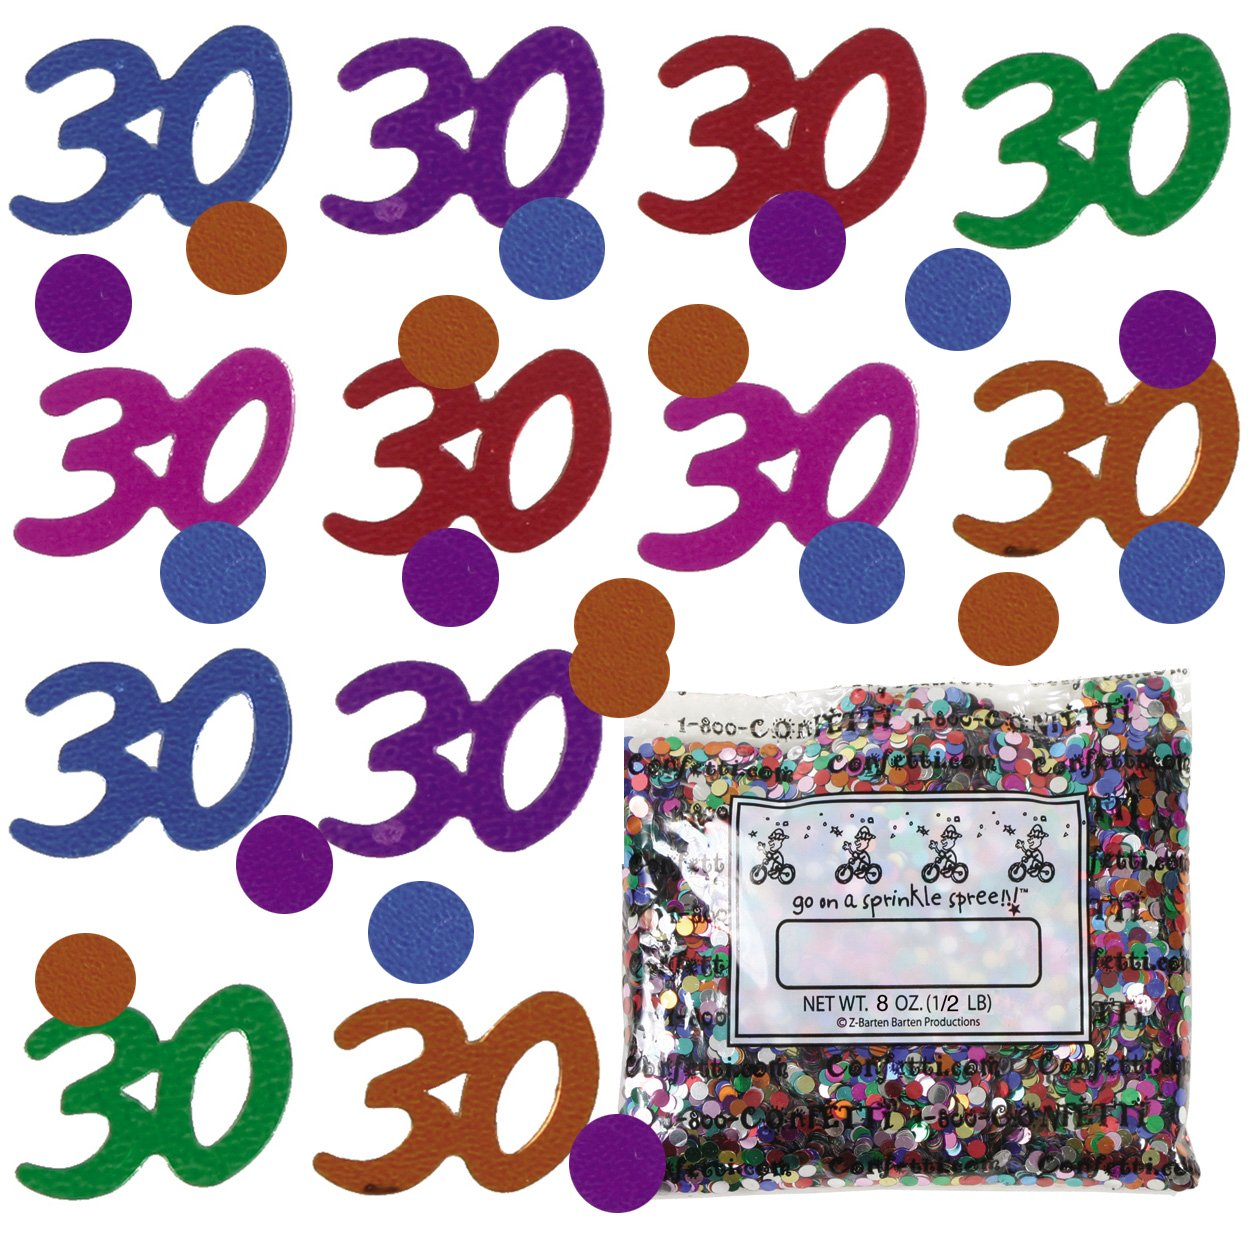 Confetti Mix - 30s & Circles Multicolors - One Pound - Free Priority Mail- (9002)